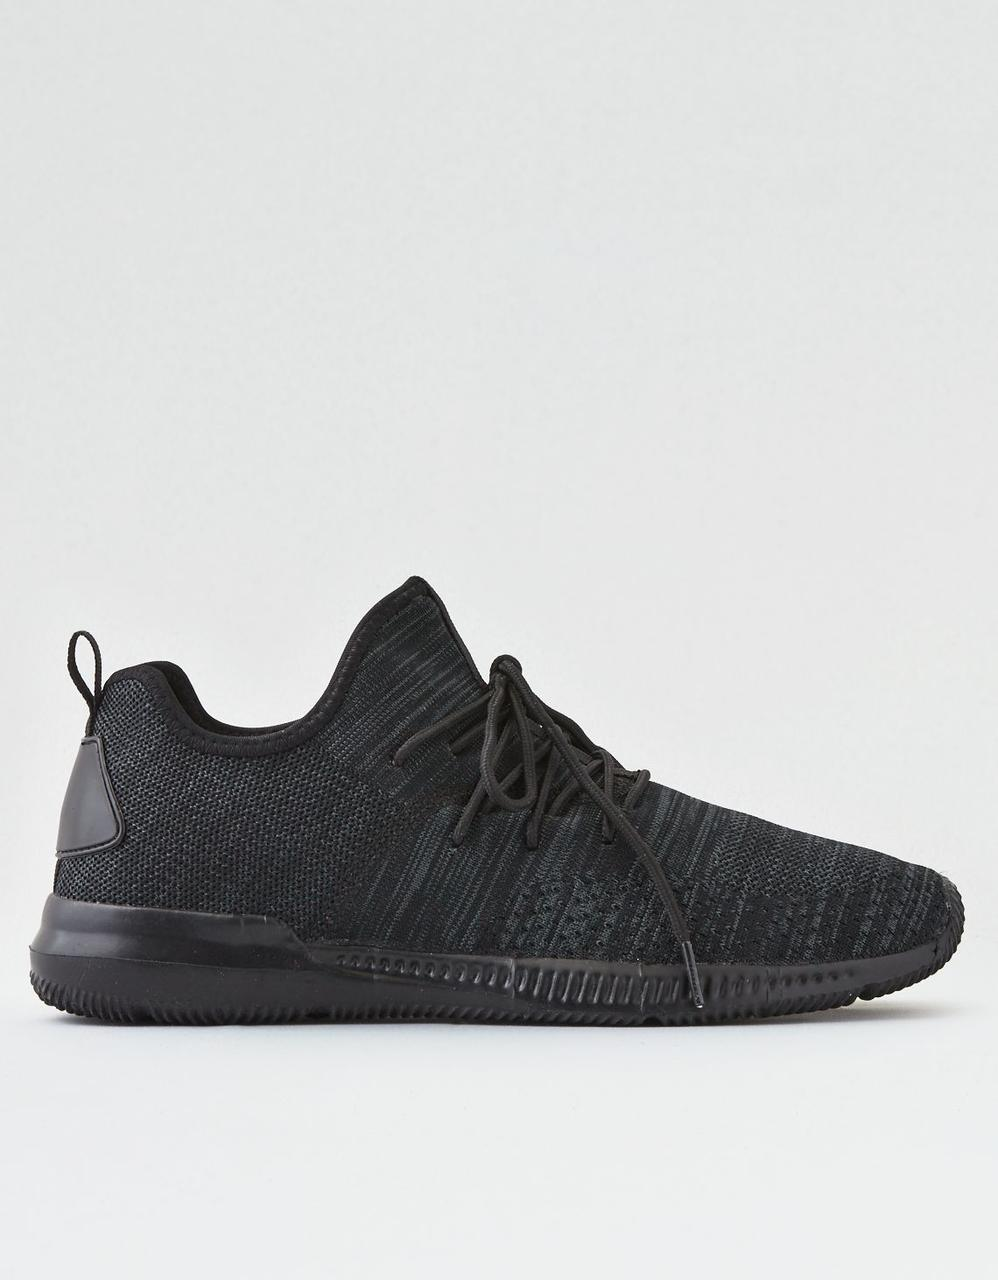 American Eagle Shoes, AEO KNIT RUNNER